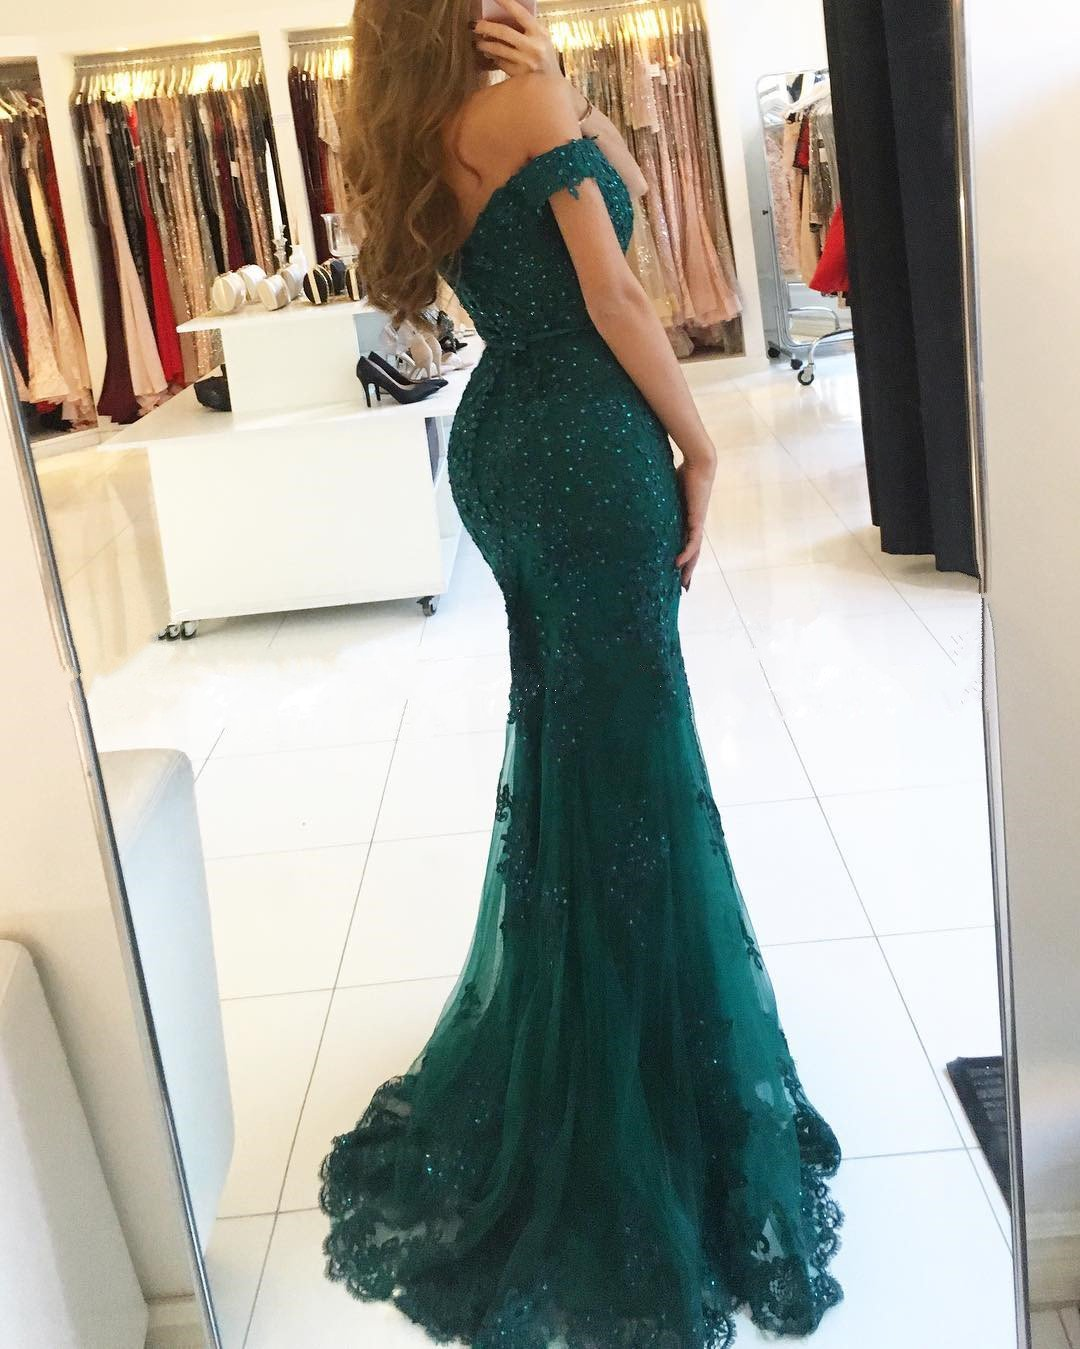 f619bb04b36 2019 New Arrivals Lace Mermaid Style Dress Featuring a off-the-shoulder  Neckline and pearl beaded details. Perfect For Prom